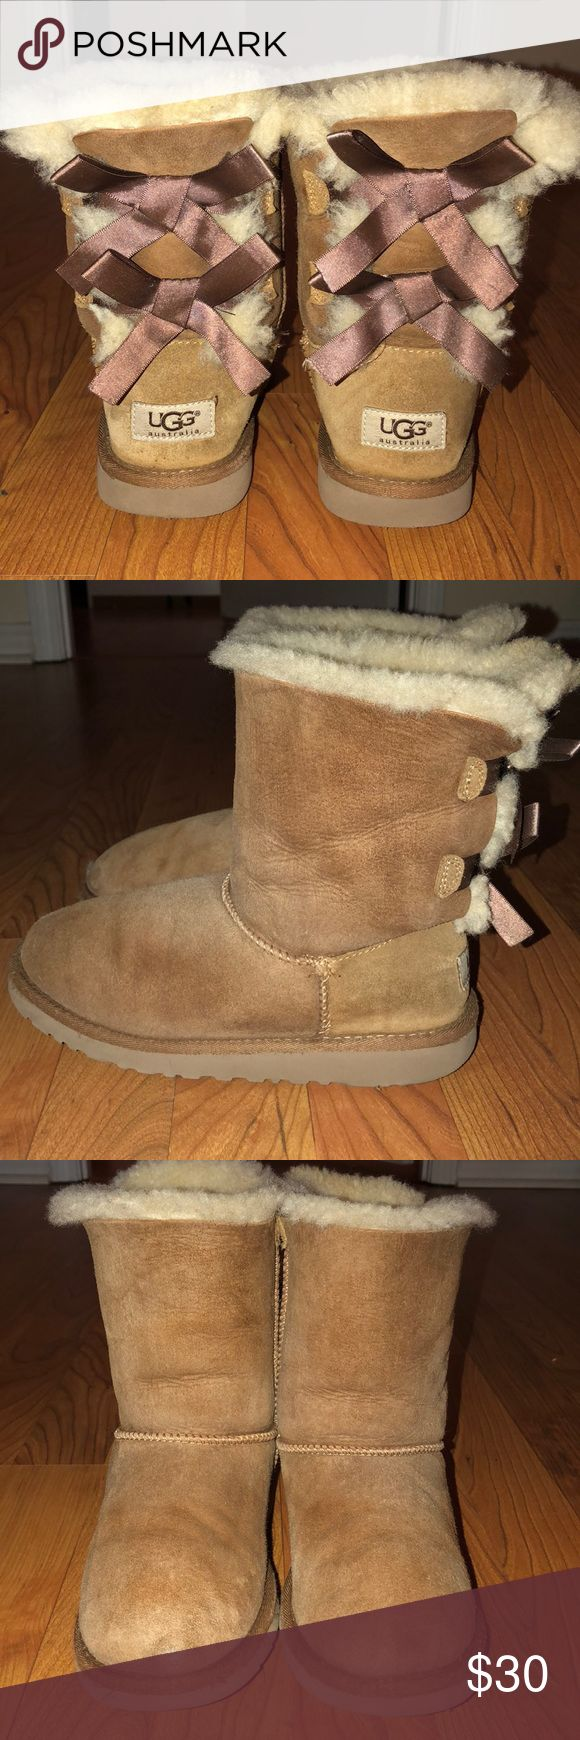 UGG BAILEY BOWS UGG BAILEY BOWS SIZE: 4 (will fit up to 6.5) COLOR: CHESTNUT *** these need a good cleaning. They were very loved! Still have tons of life left. Small hole on toe of right boot. Can be fixed or leave as is. Still look great on! Still very comfortable*** I am open to all reasonable offers❤️ UGG Shoes Winter & Rain Boots